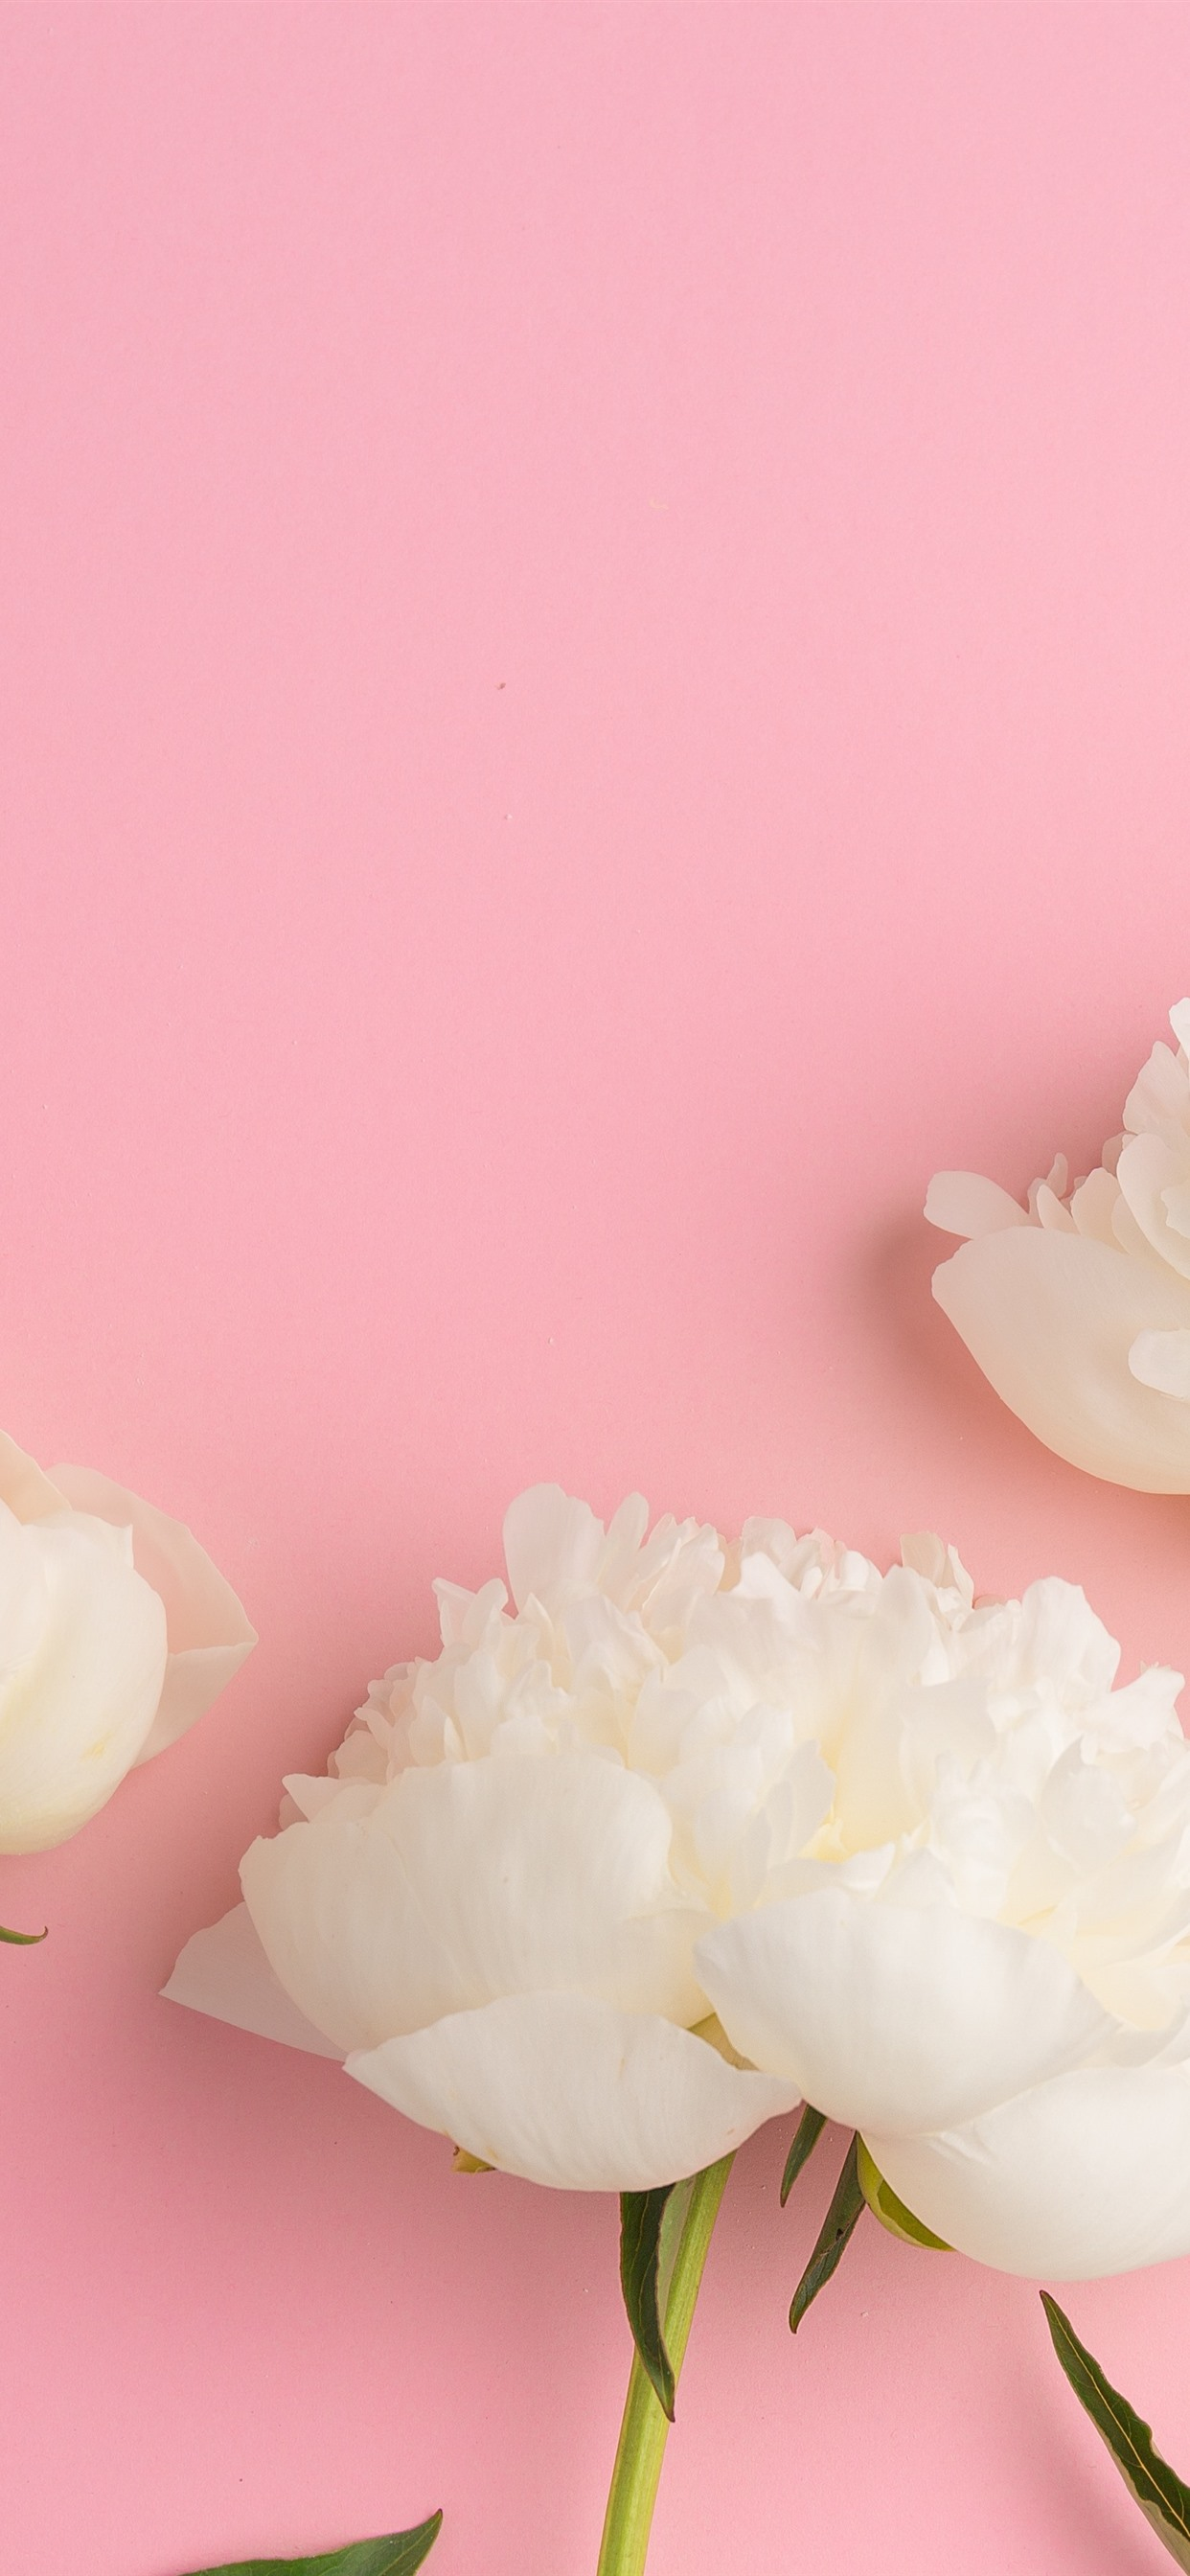 White Peonies Pink Background 1242x2688 Iphone 11 Pro Xs Max Wallpaper Background Picture Image